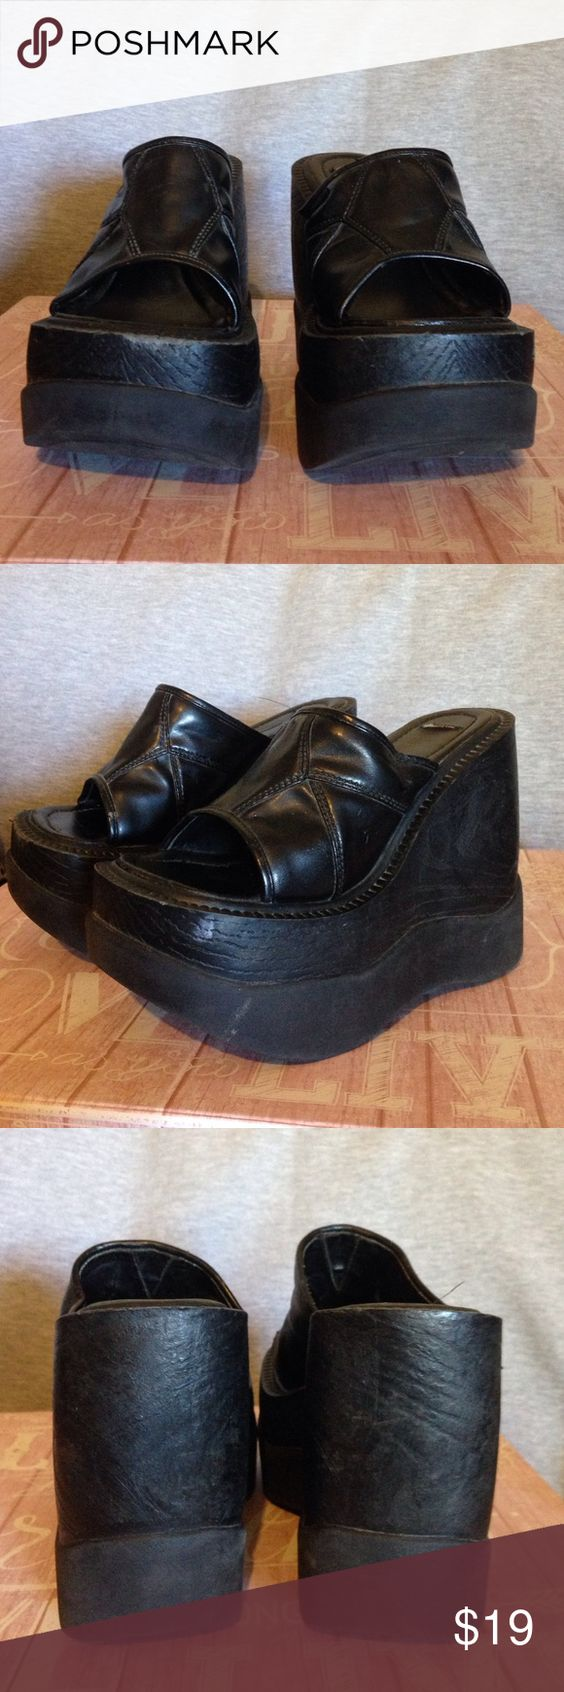 Black funky platform wedges! Size 7.5 Black funky platform wedges! Size 7.5  There is no actual size on the shoes but I wear a 7.5 and they fit perfect! Shoes Platforms